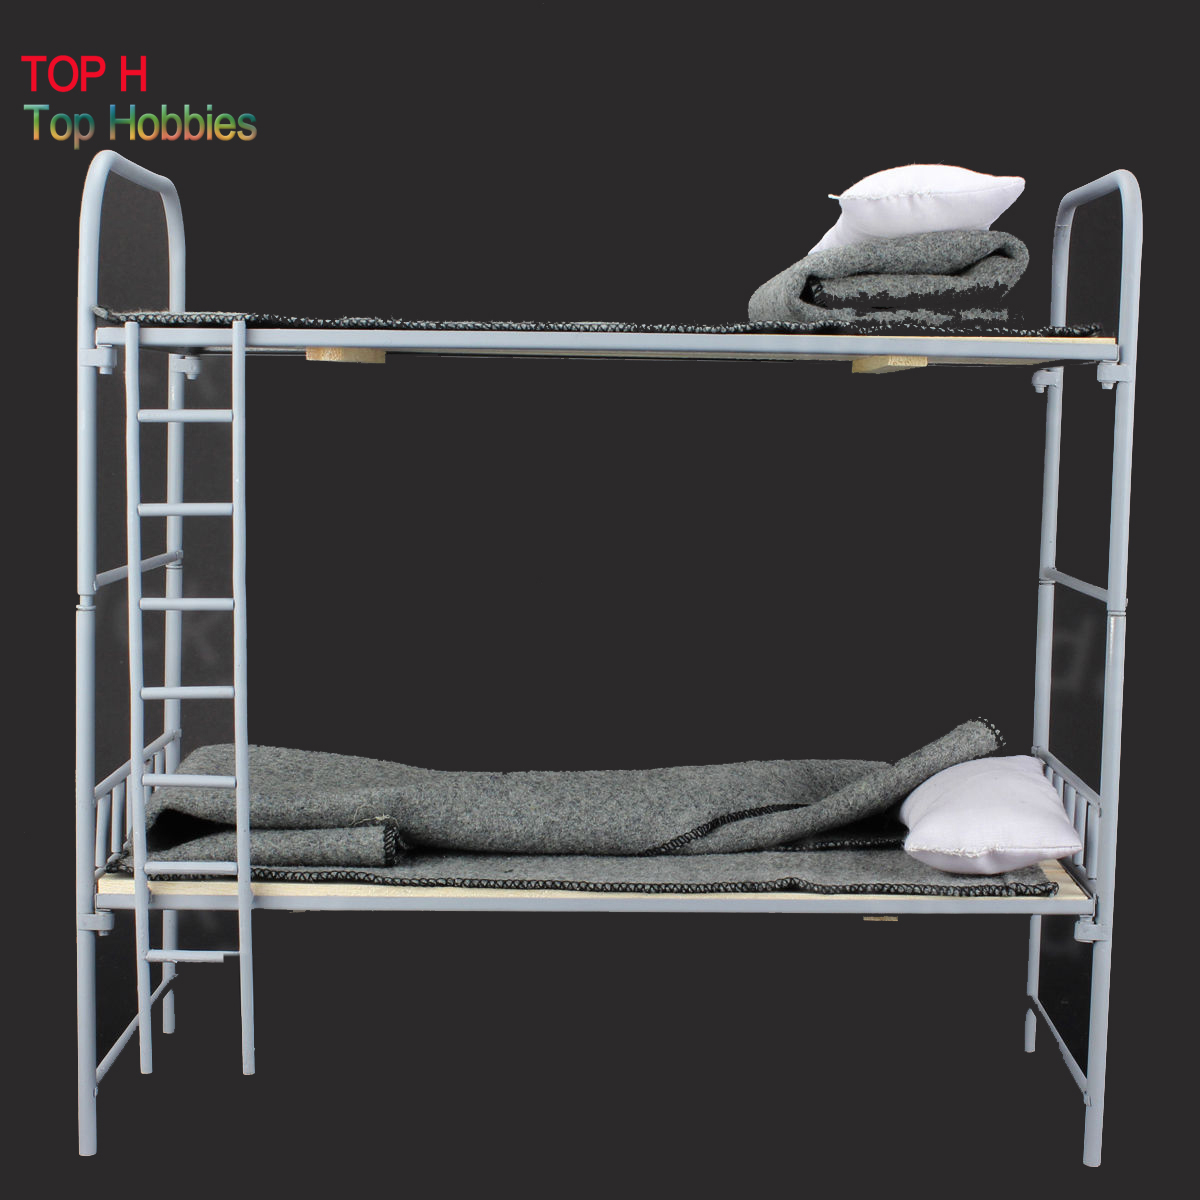 Toy Model WWII German 1/6 Scale Metal & Wooden Bunk Bed Set For 12 Figure